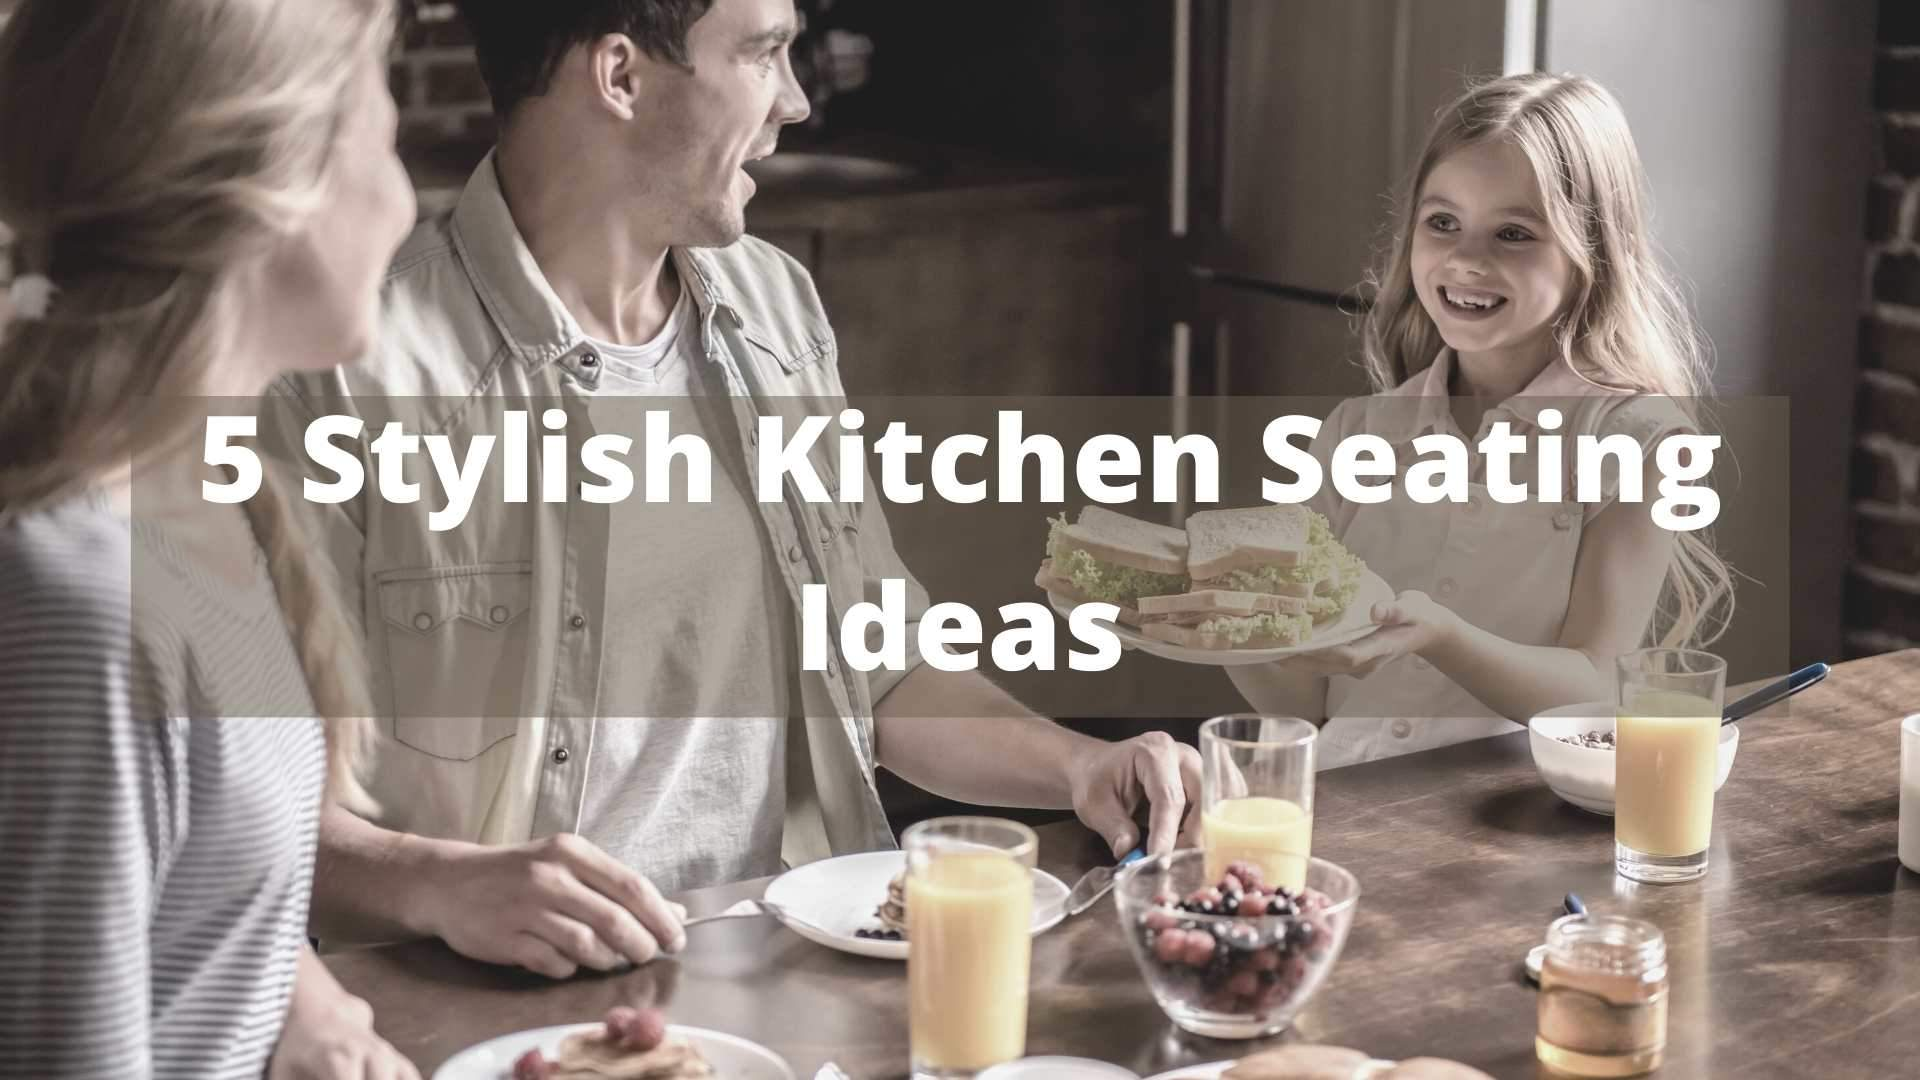 5 Stylish Kitchen Seating Ideas